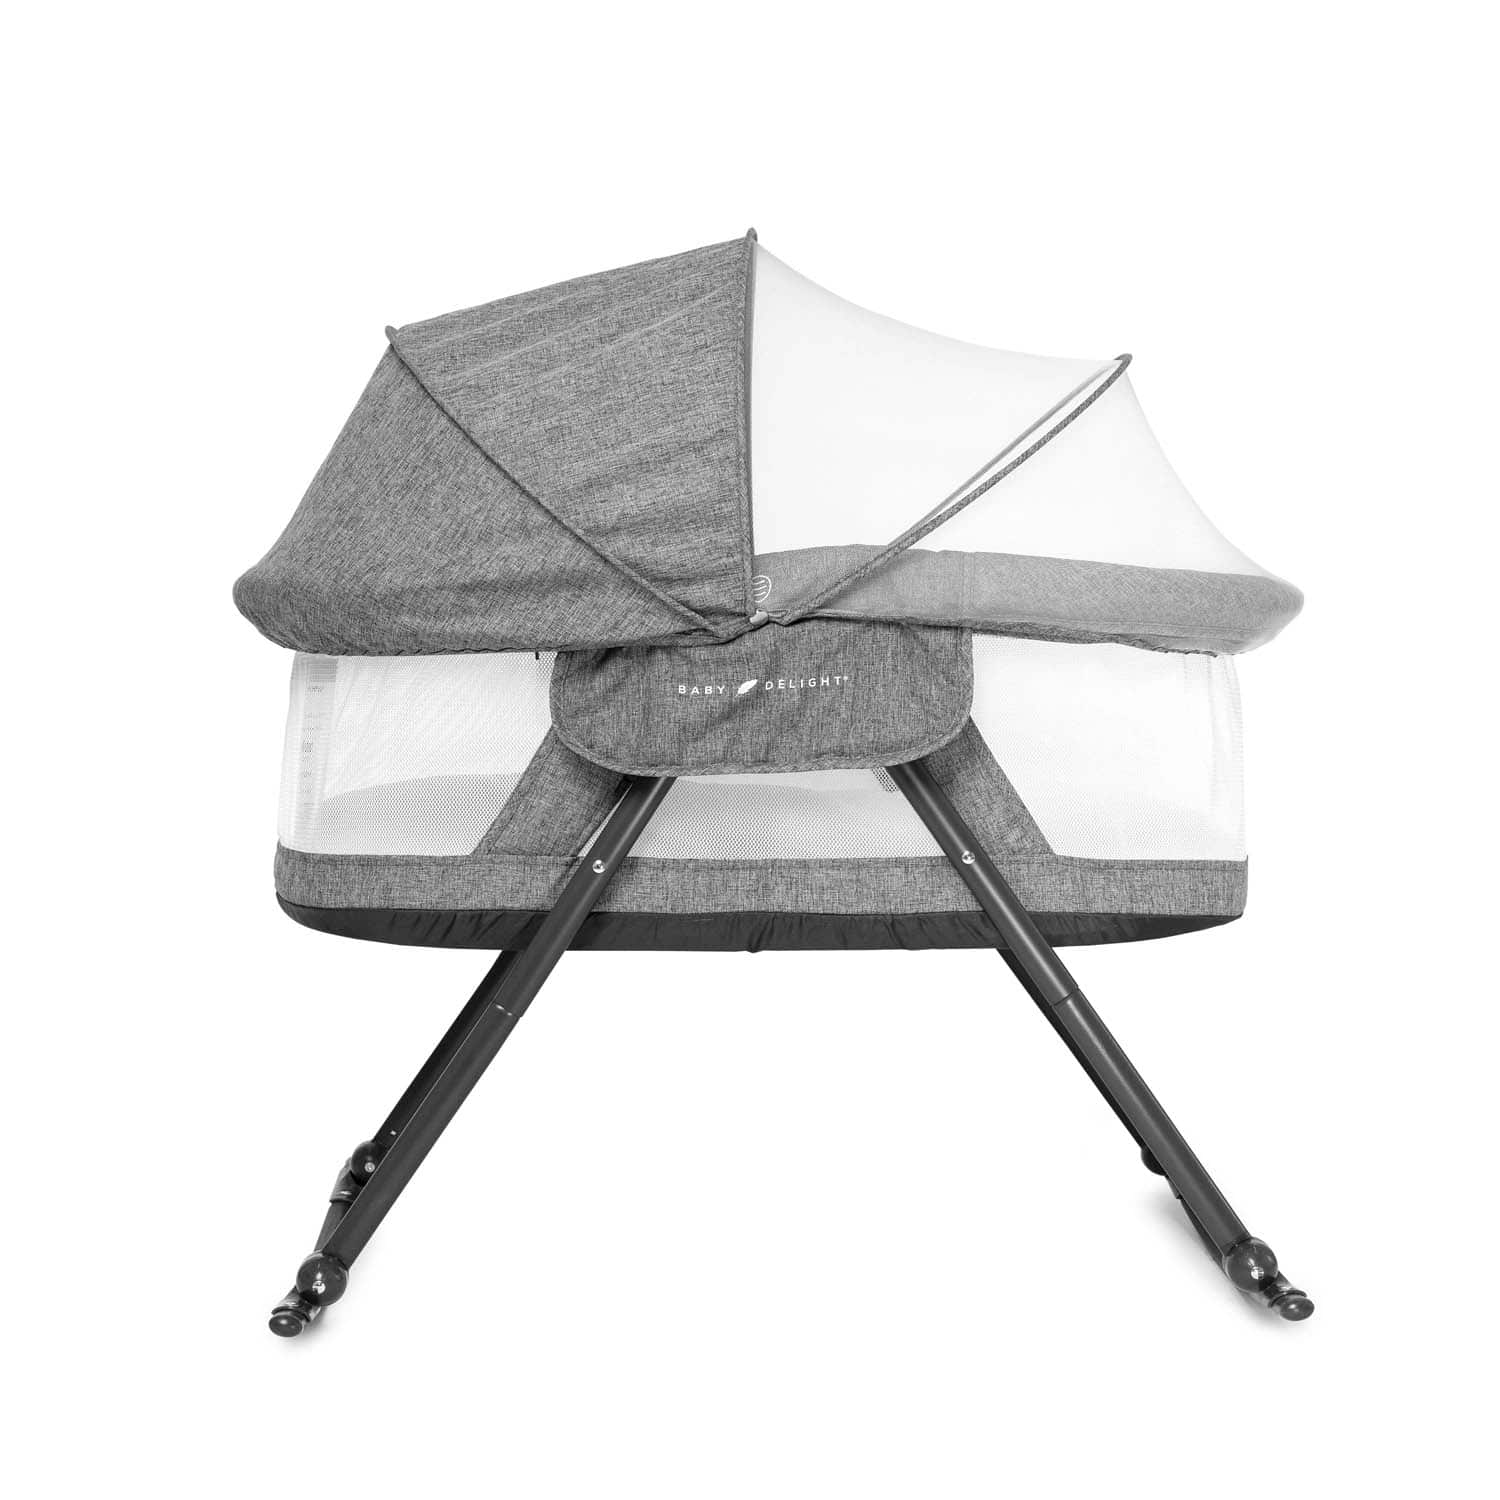 Hankyky Baby Easy to-Go Snuggle Bassinet for Baby Sleep Foldable Baby Backpack Bed with Mosquito Canopy for Travel for Sleep